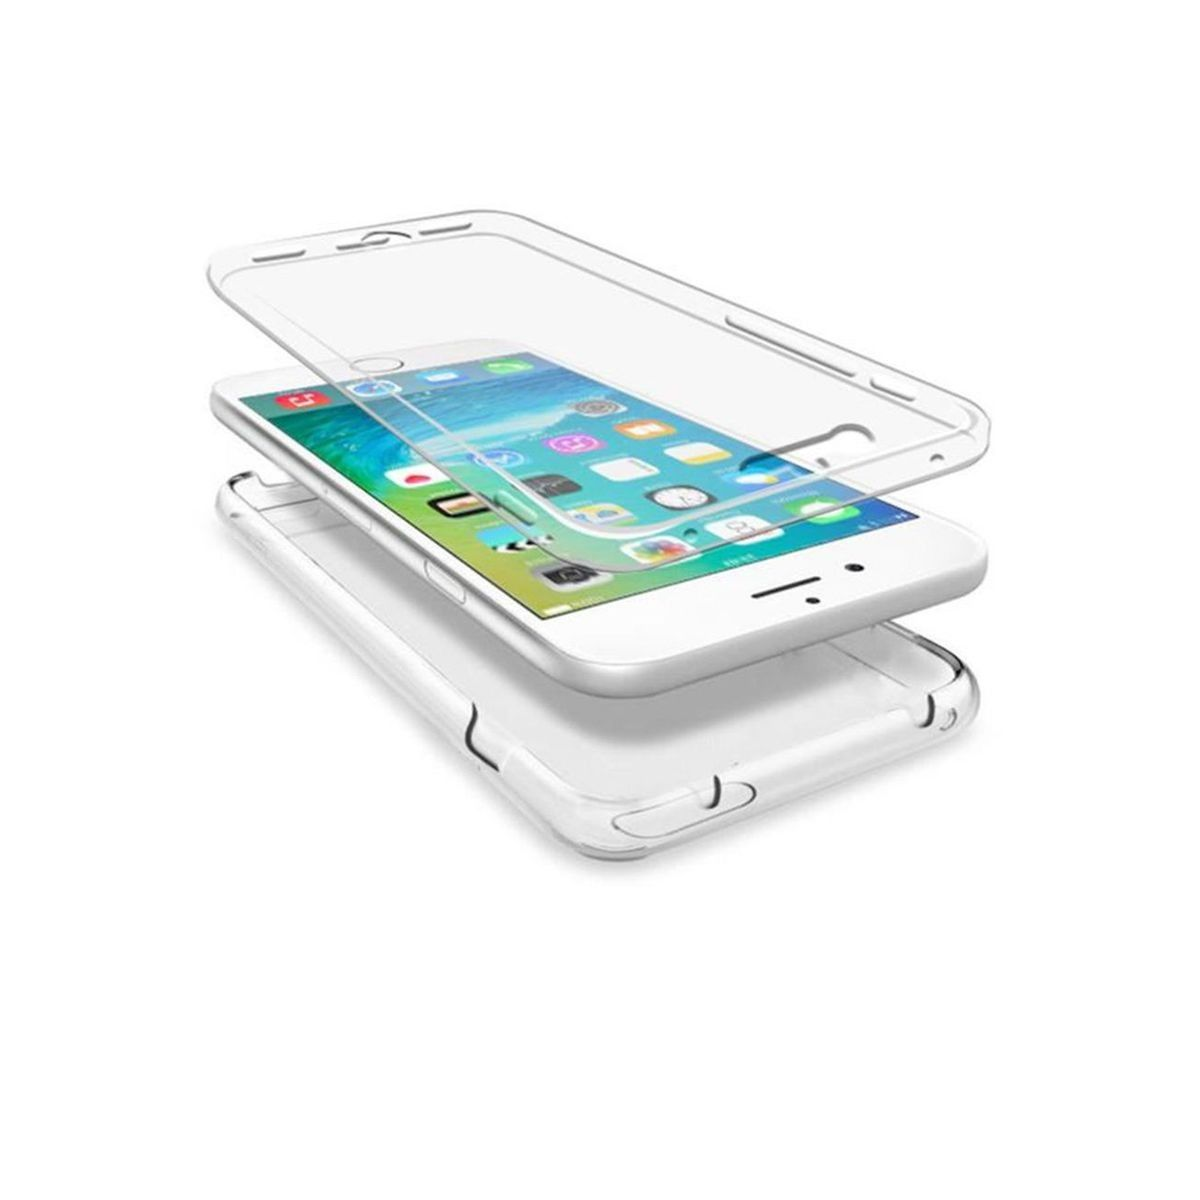 Coque integrale transparente iphone 6